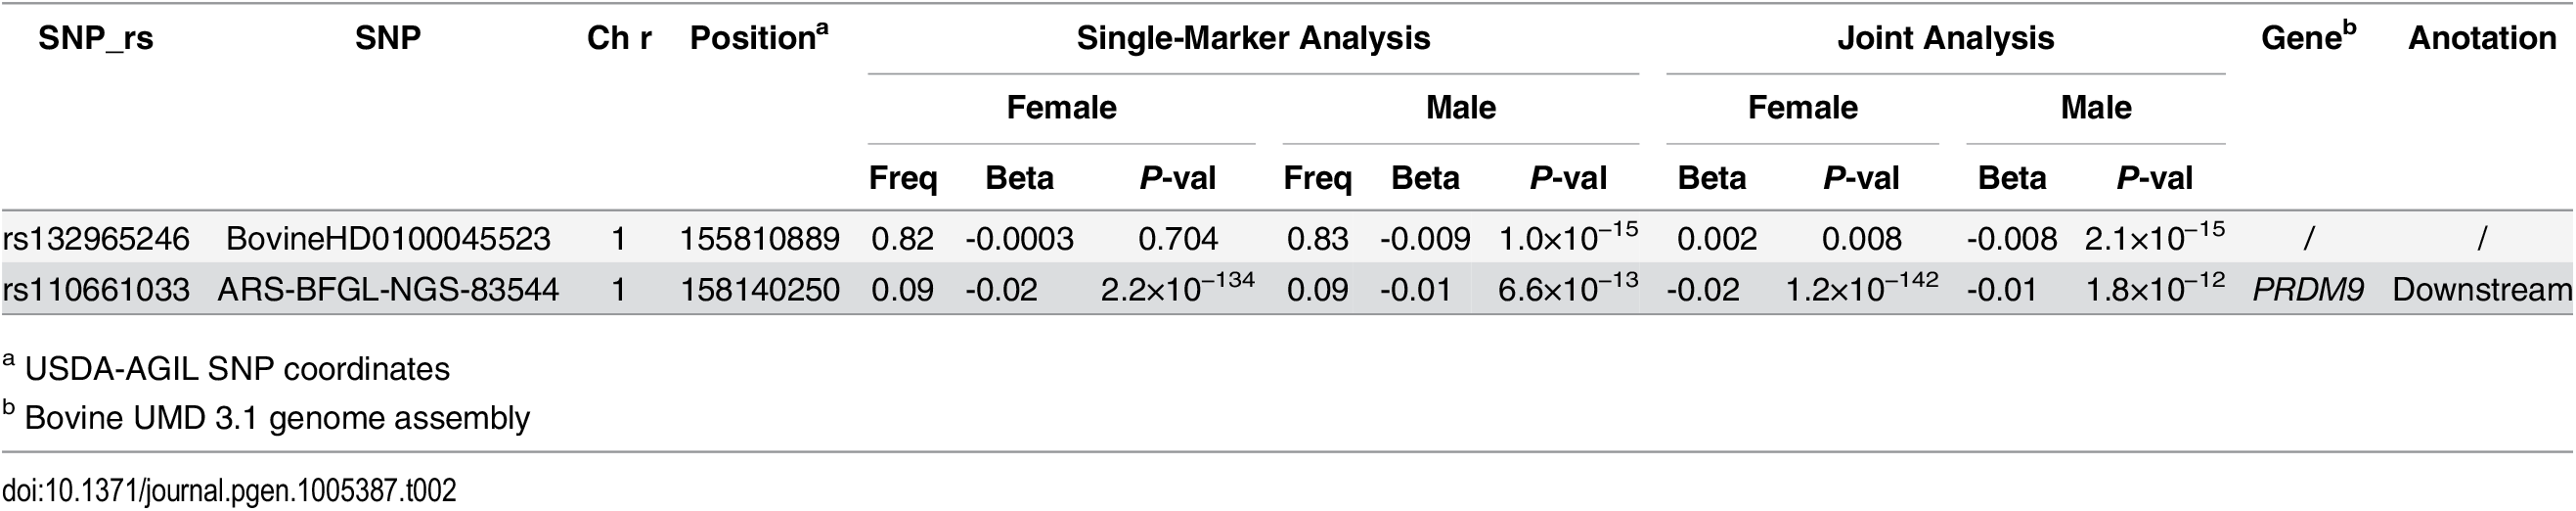 Independent SNPs associated with hotspot usage in females and males.